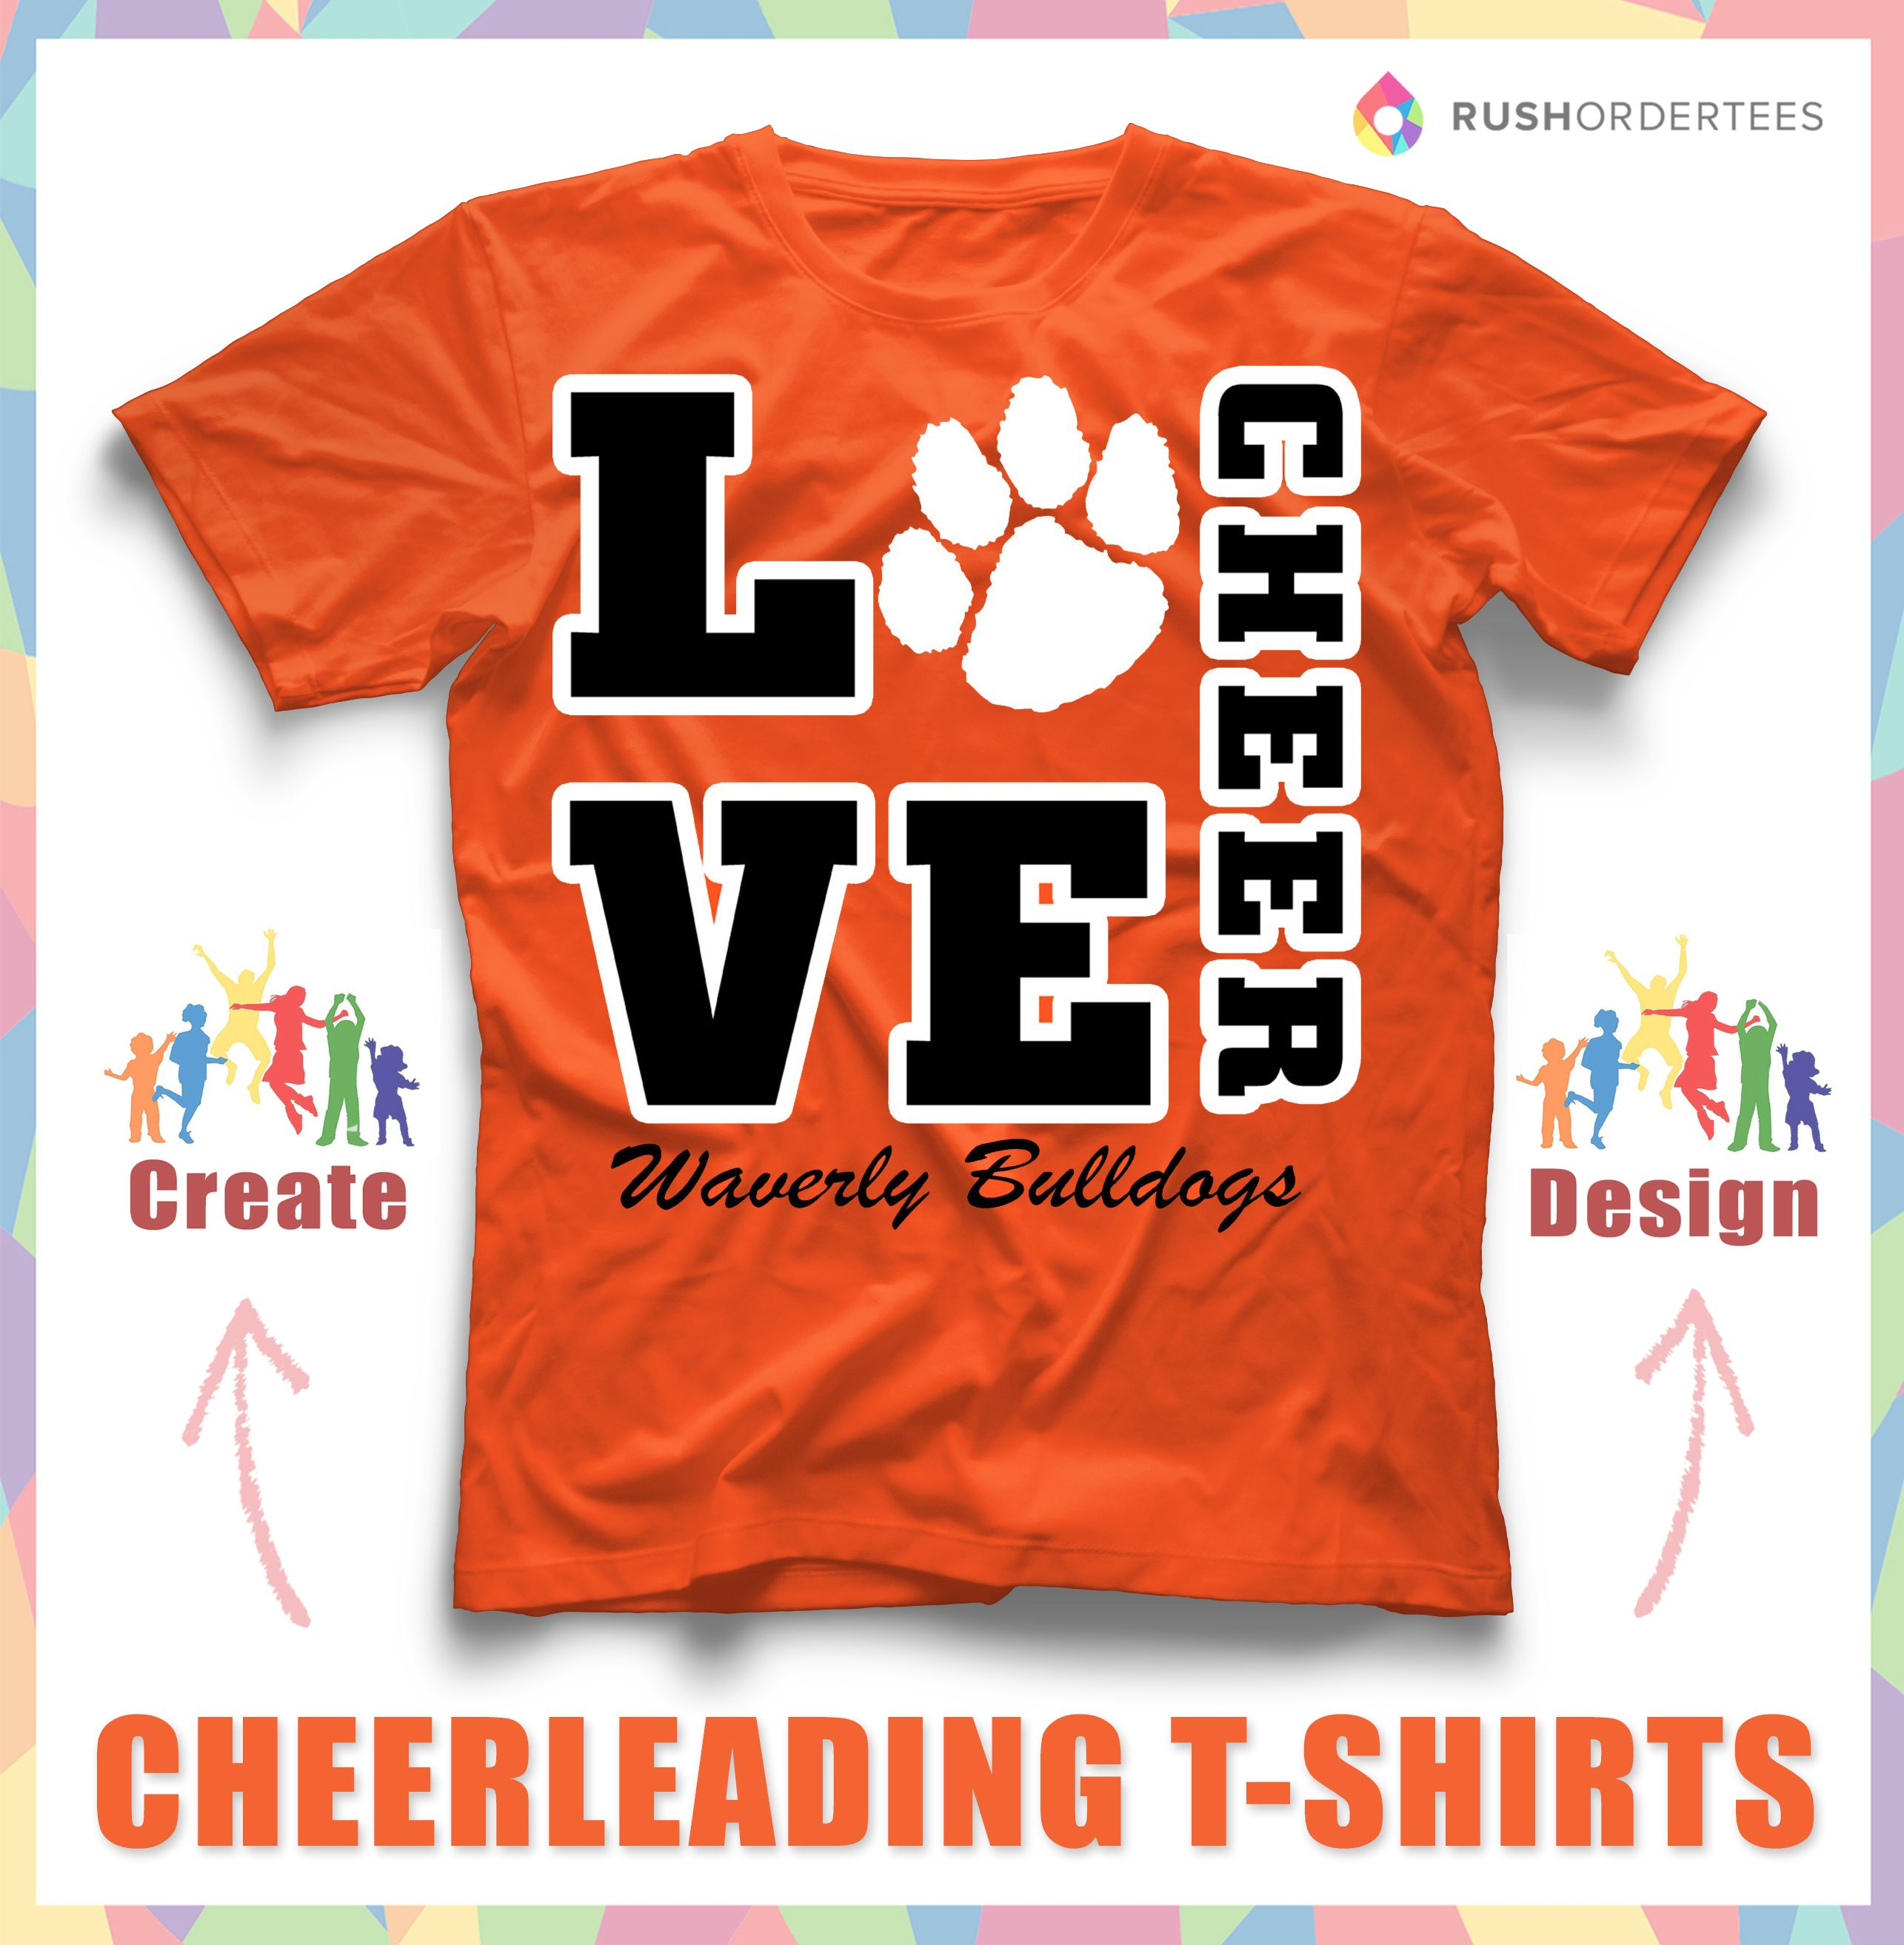 Design t shirt easy - Use Our Easy Design Templates For Custom Cheerleading Team T Shirts From Great For Tshirt Design Ideas